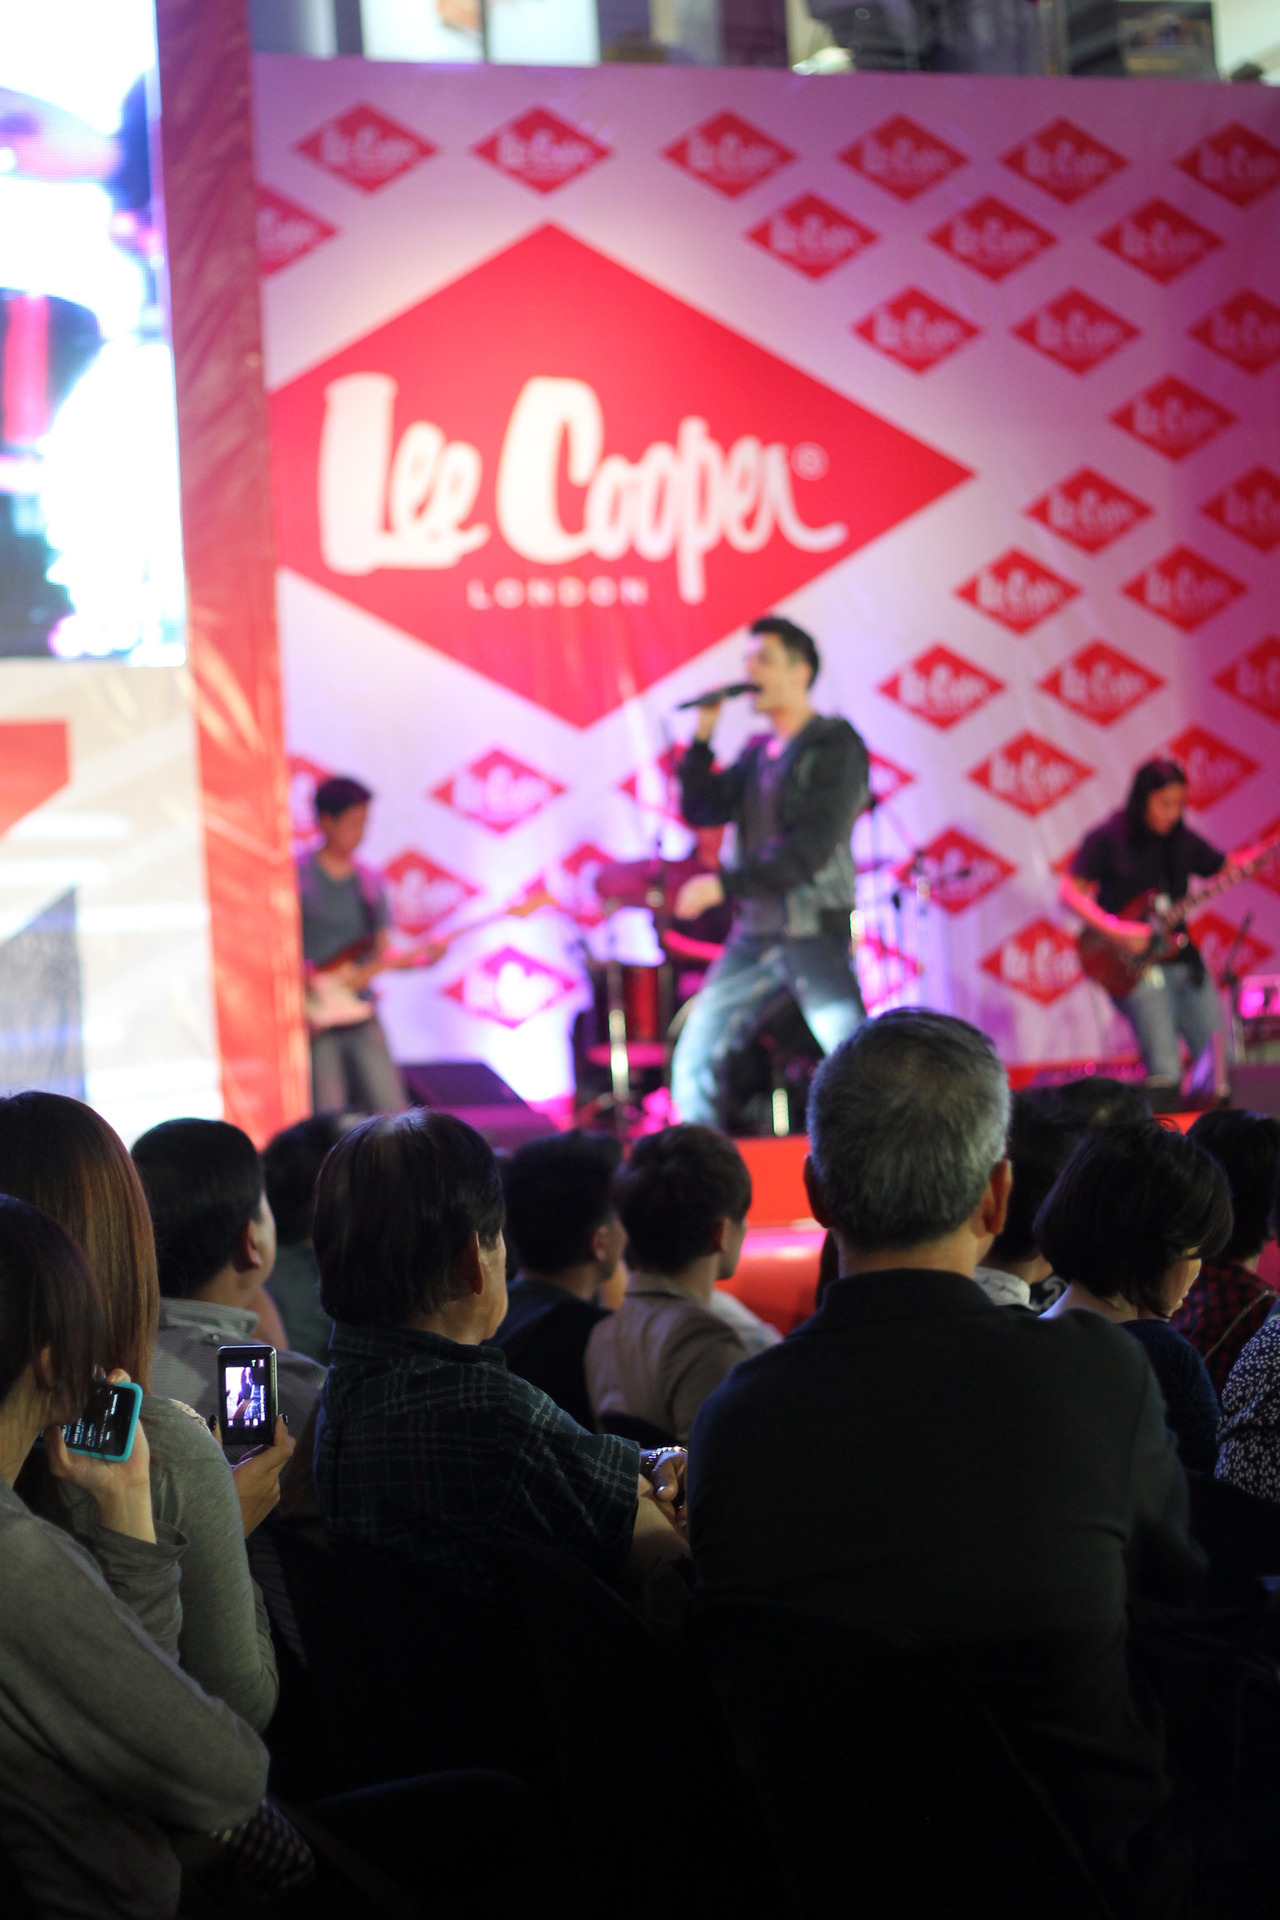 Guess the artist who performed yesterday at the Lee Cooper Philippine Fashion Week Show. :D